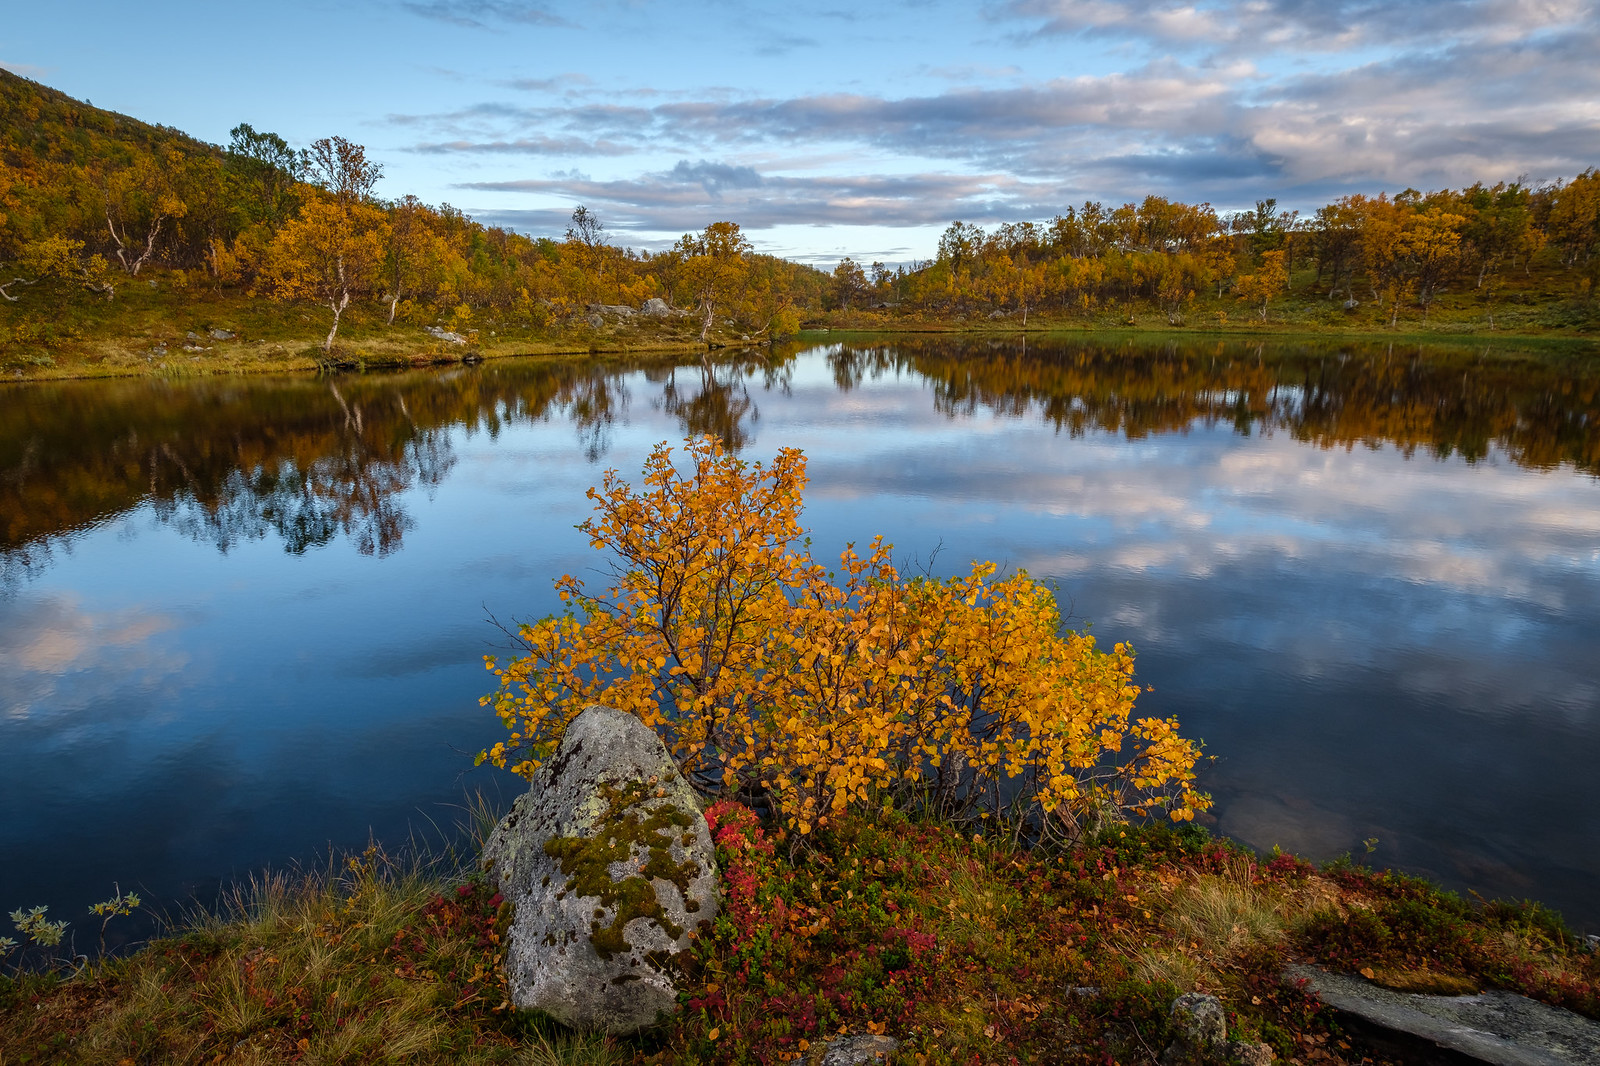 Autumn colors at Aunfjellet.